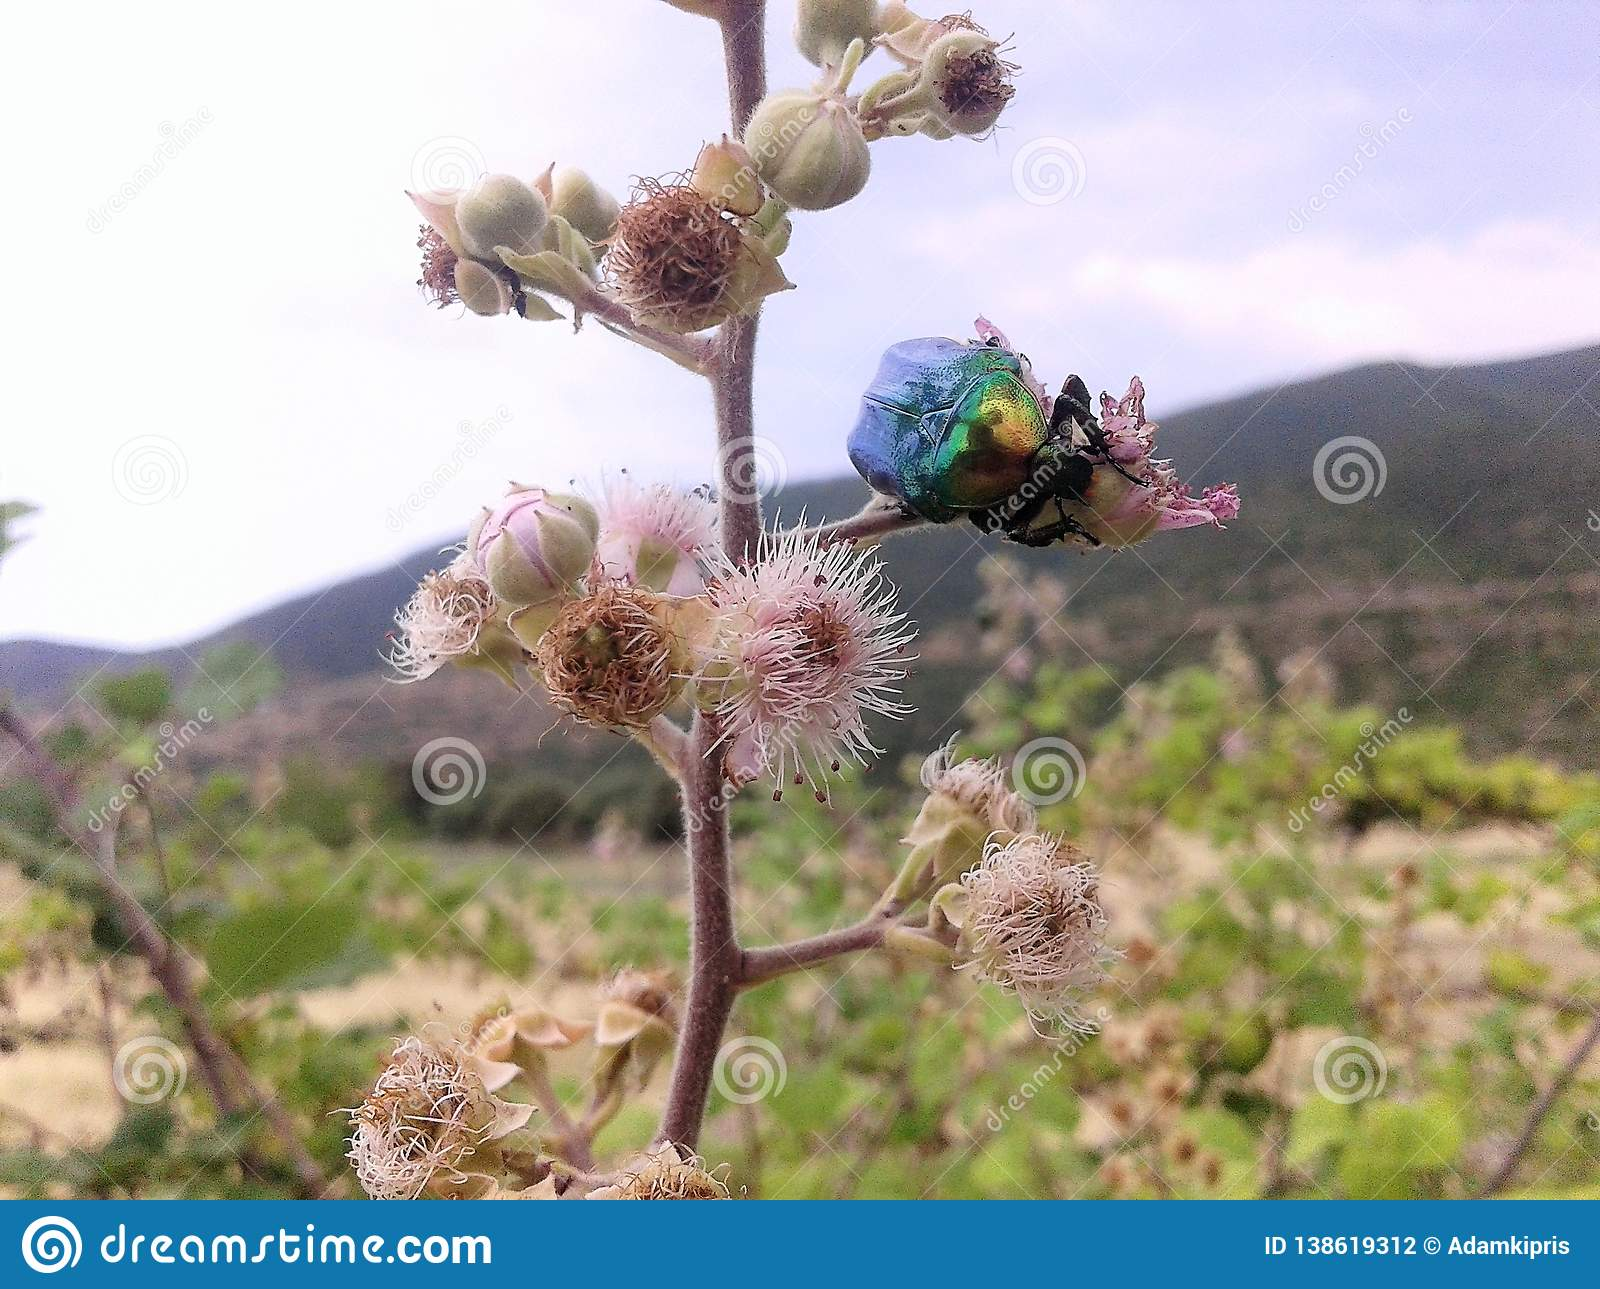 The Beetle and the flower